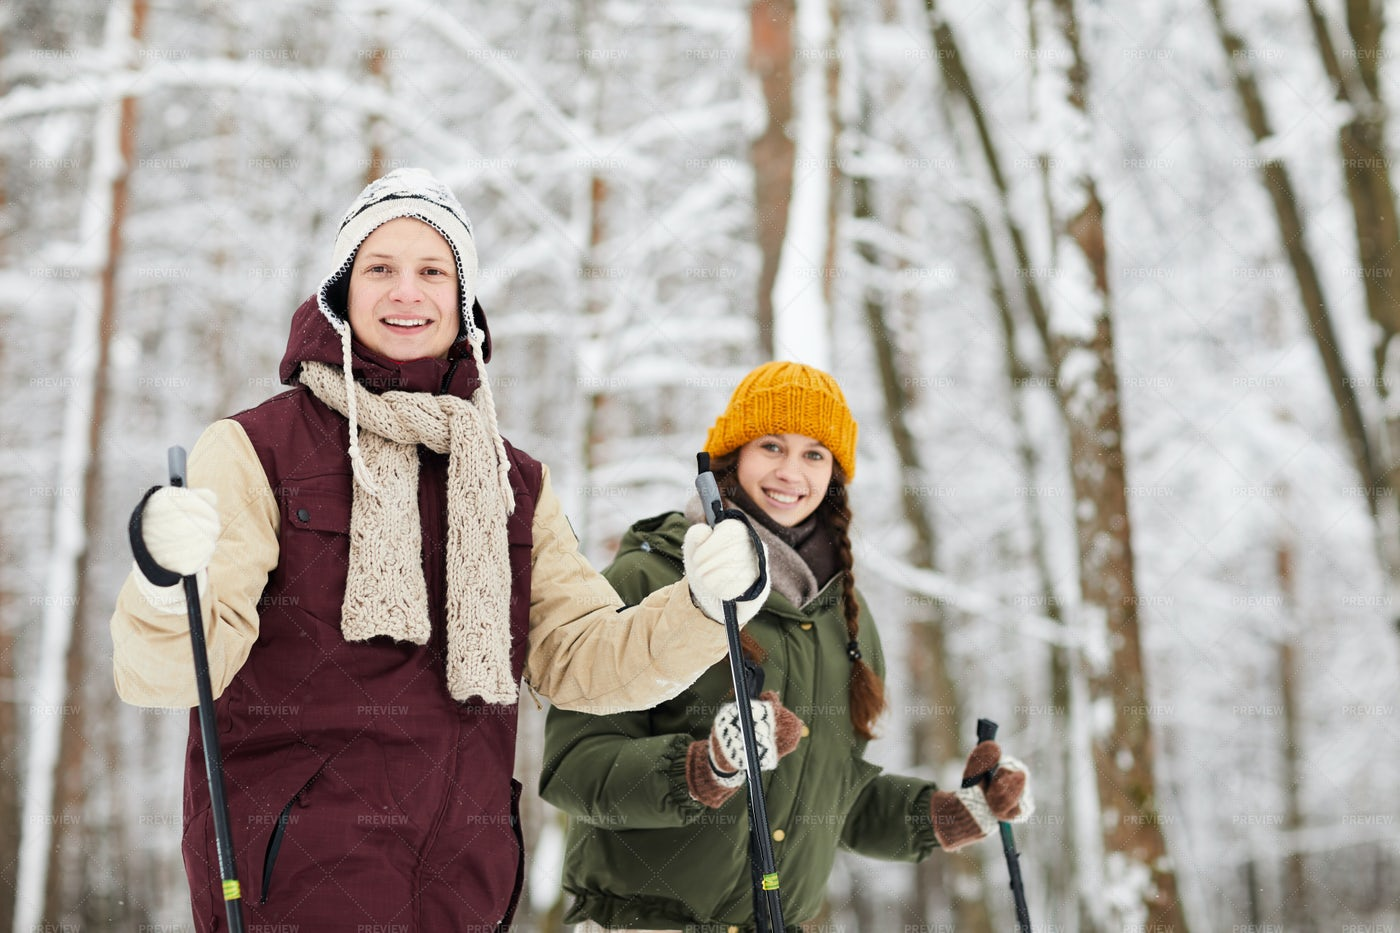 Smiling Couple Skiing In Forest: Stock Photos